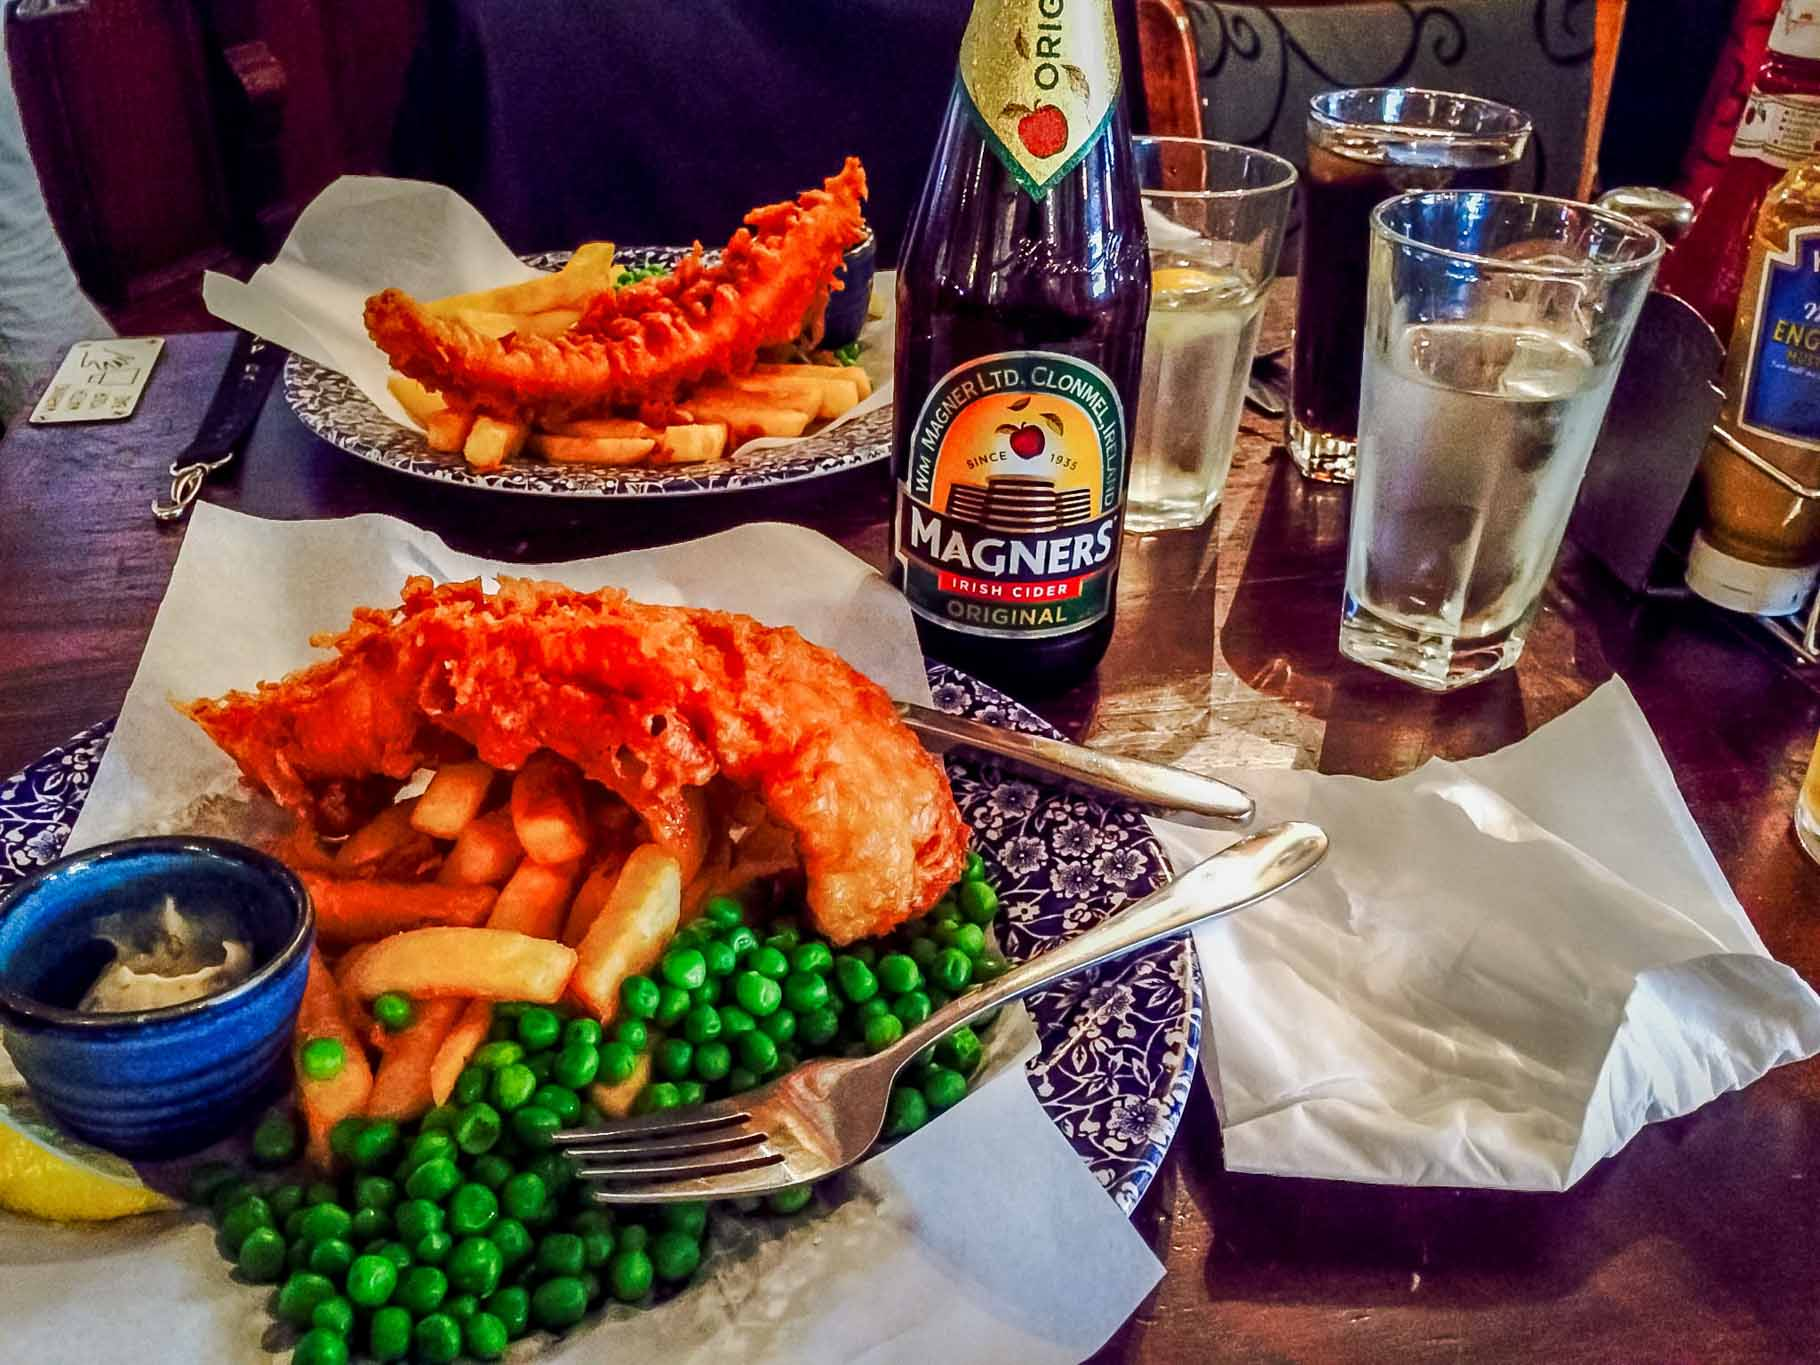 Fish and chips with cider and water on a table